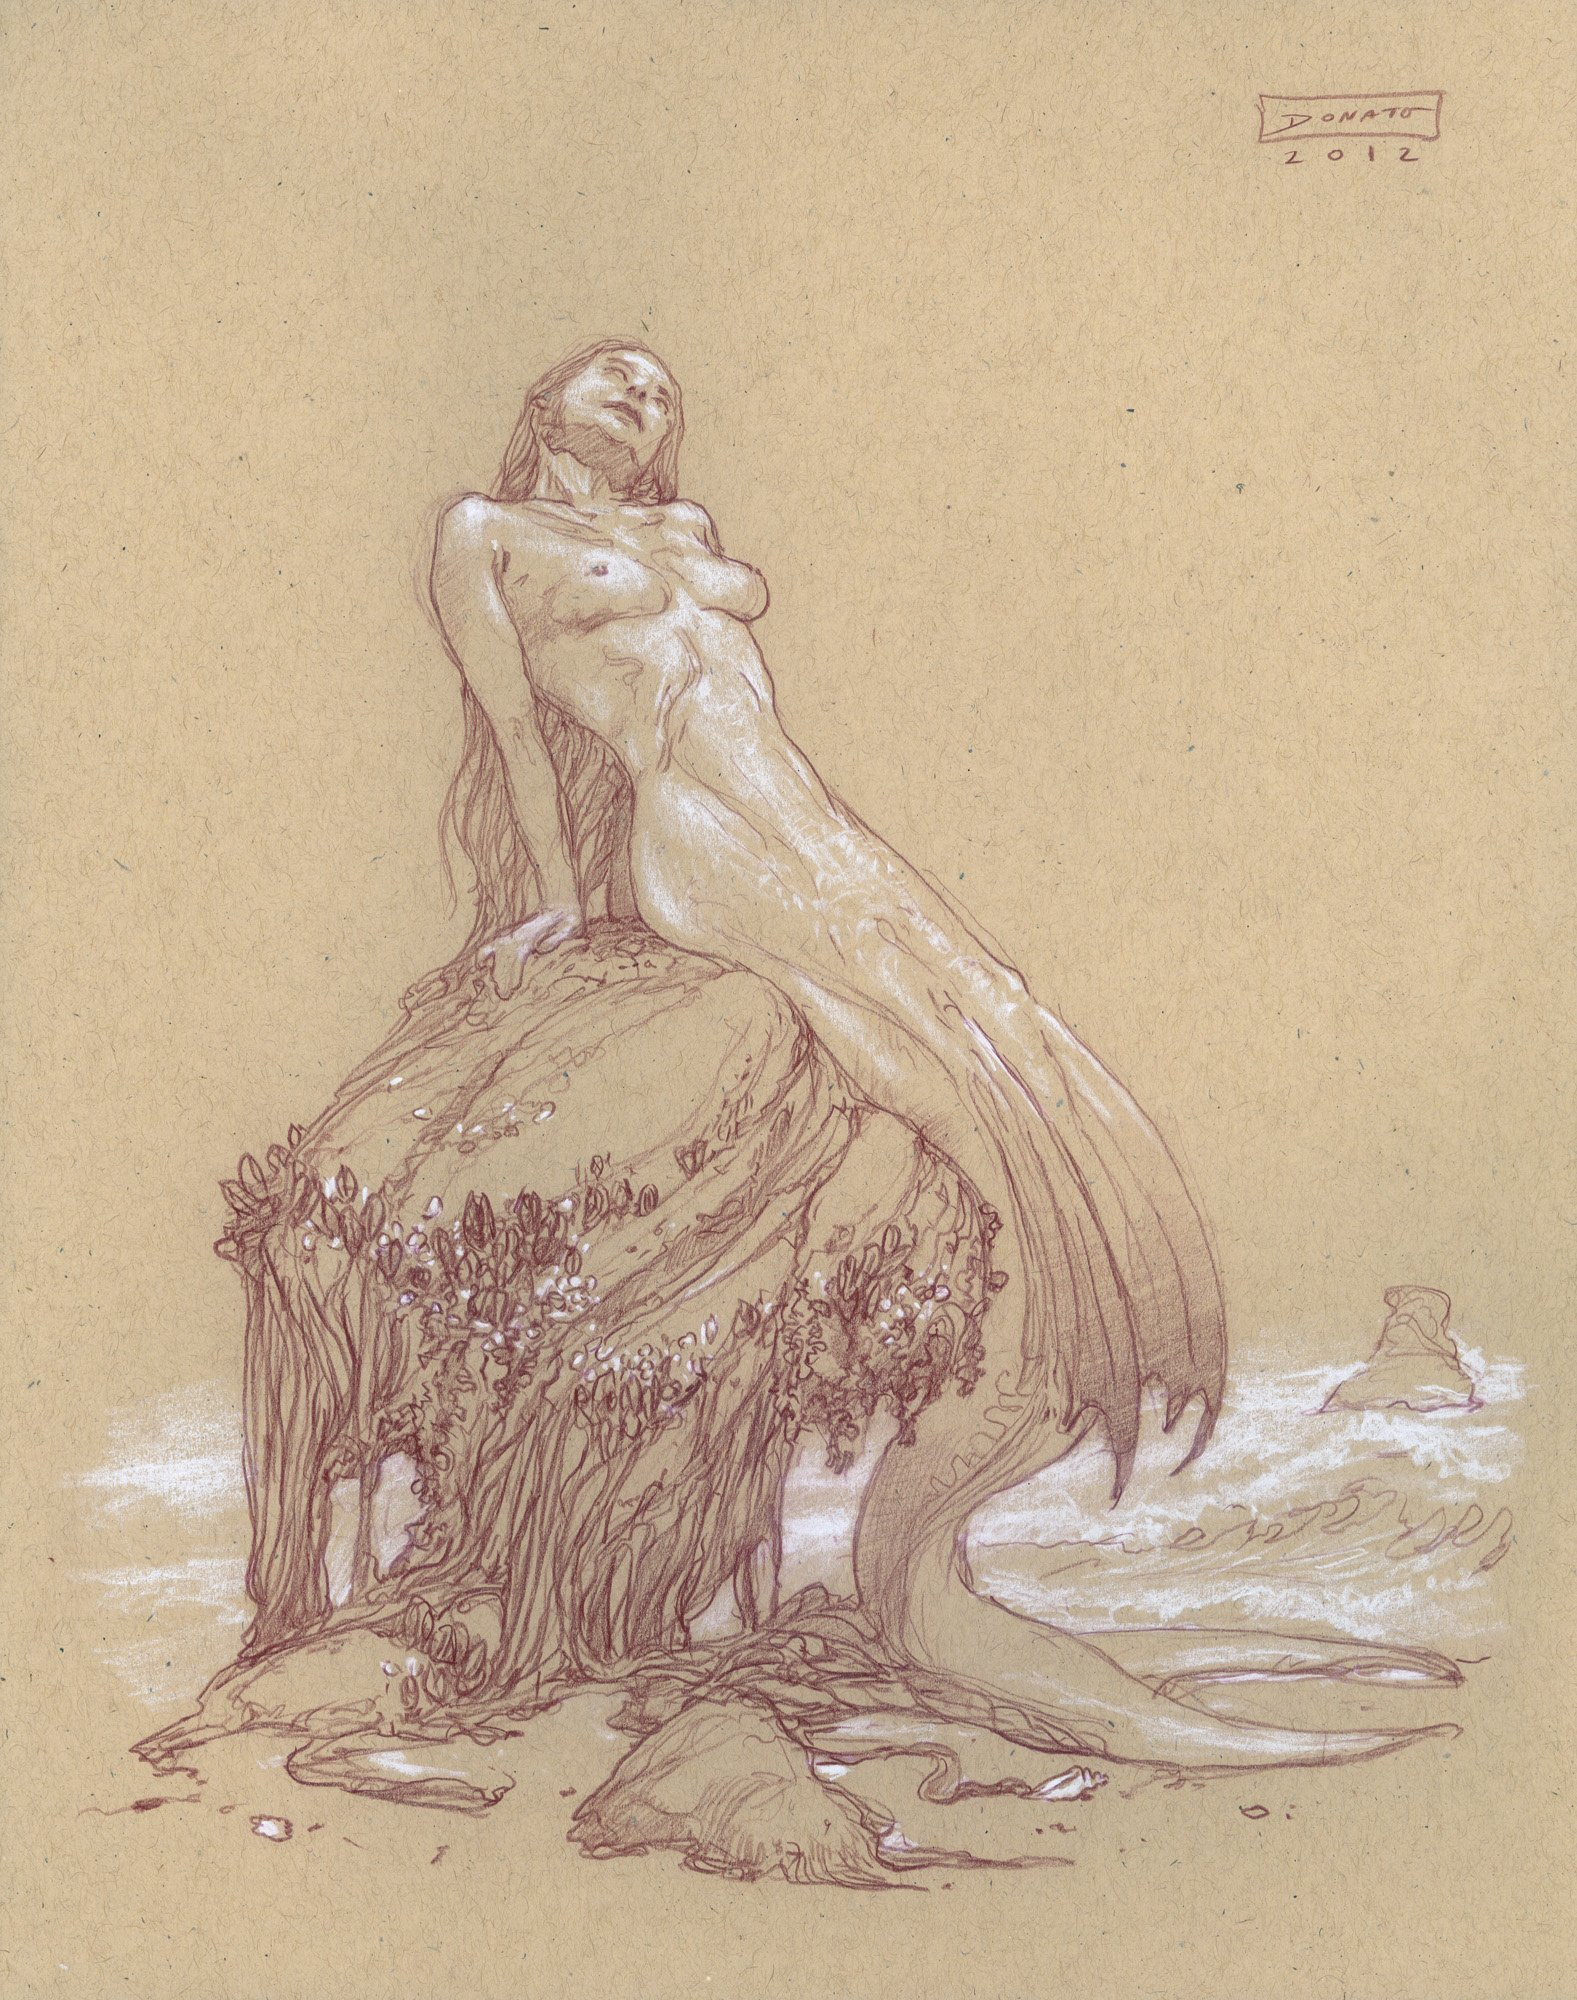 "Mermaid - Curiosity14"" x 11""  Watercolor Pencil and Chalk on Toned Paper original art available for purchase"